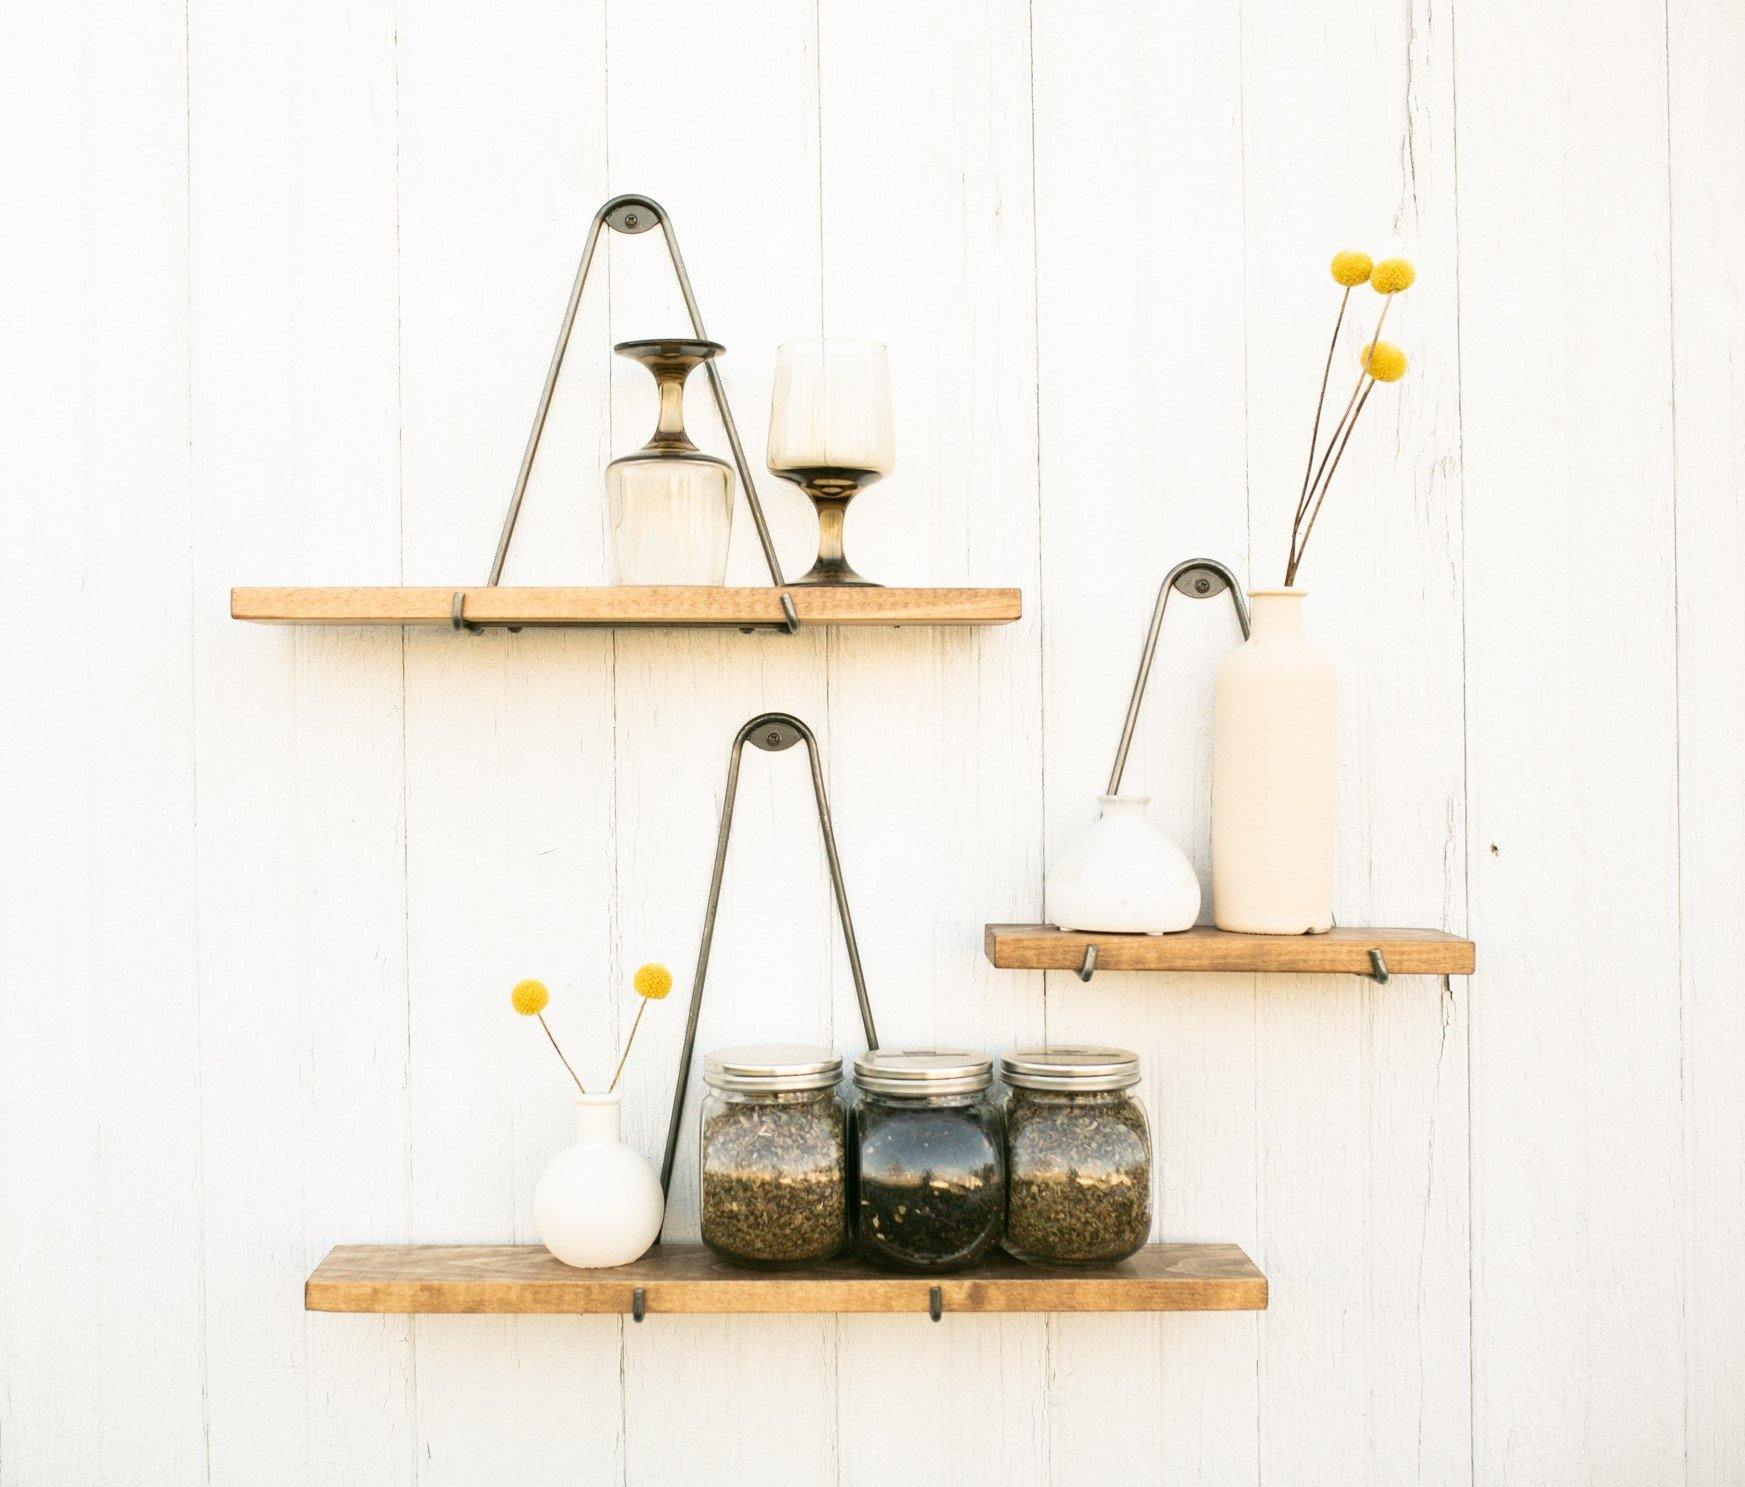 Minimalistic Shelves - Timber Made Design Co